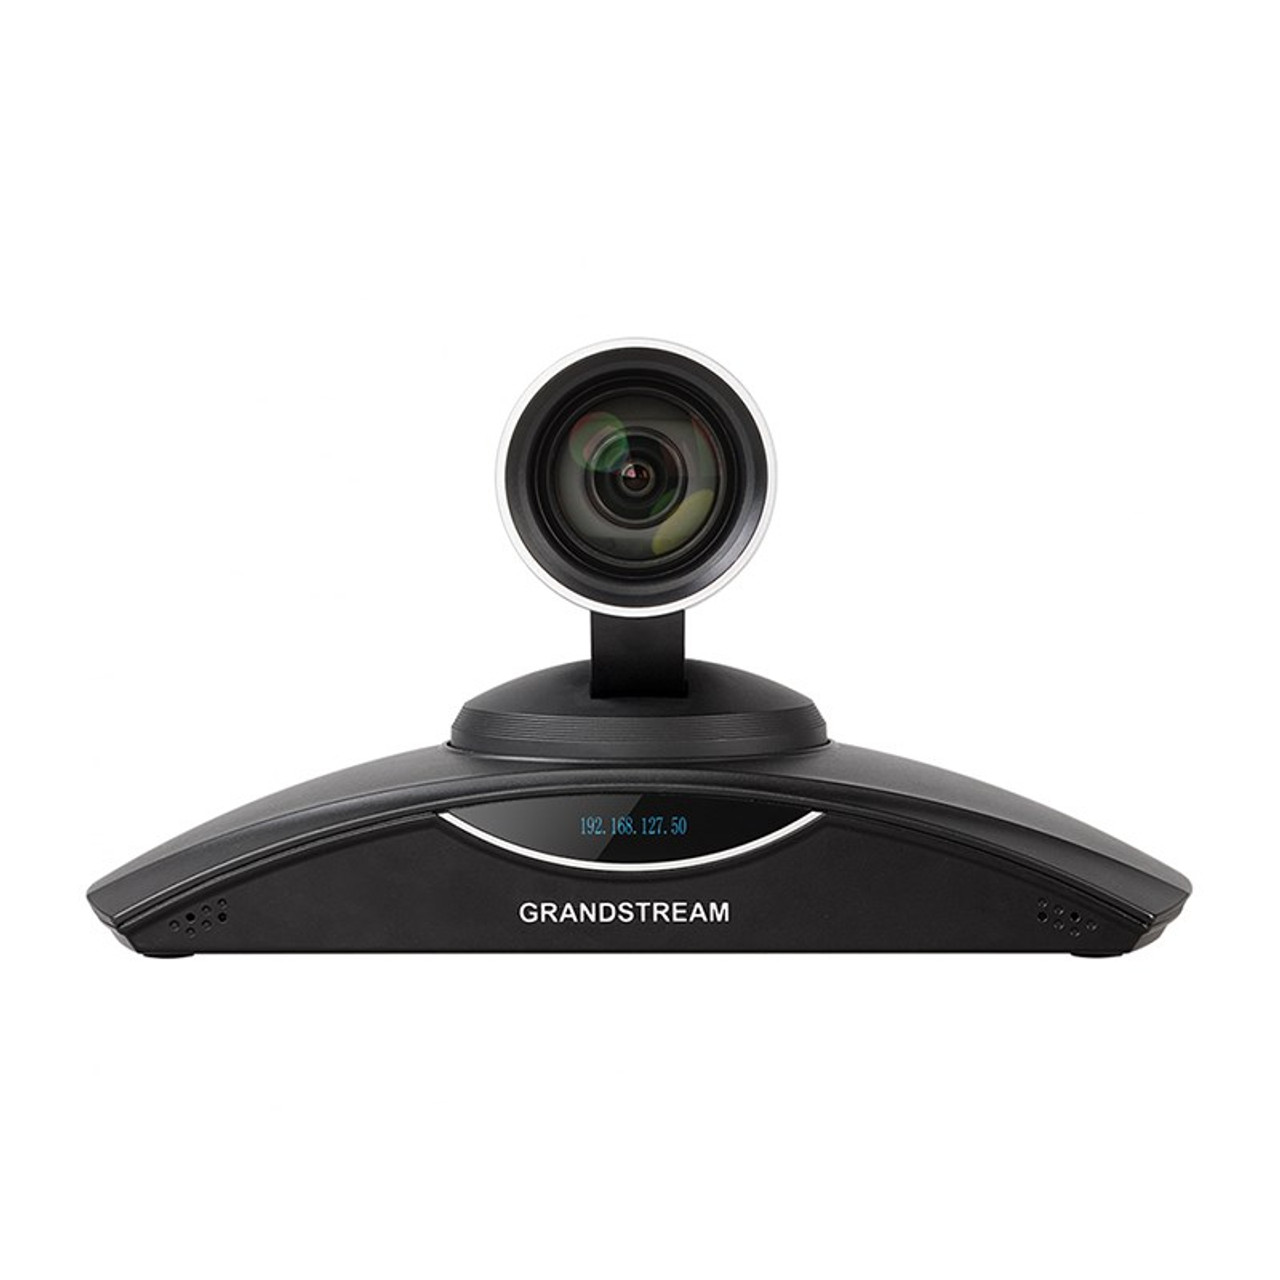 Image for Grandstream GVC3200 Android-based FHD Video Conferencing System CX Computer Superstore